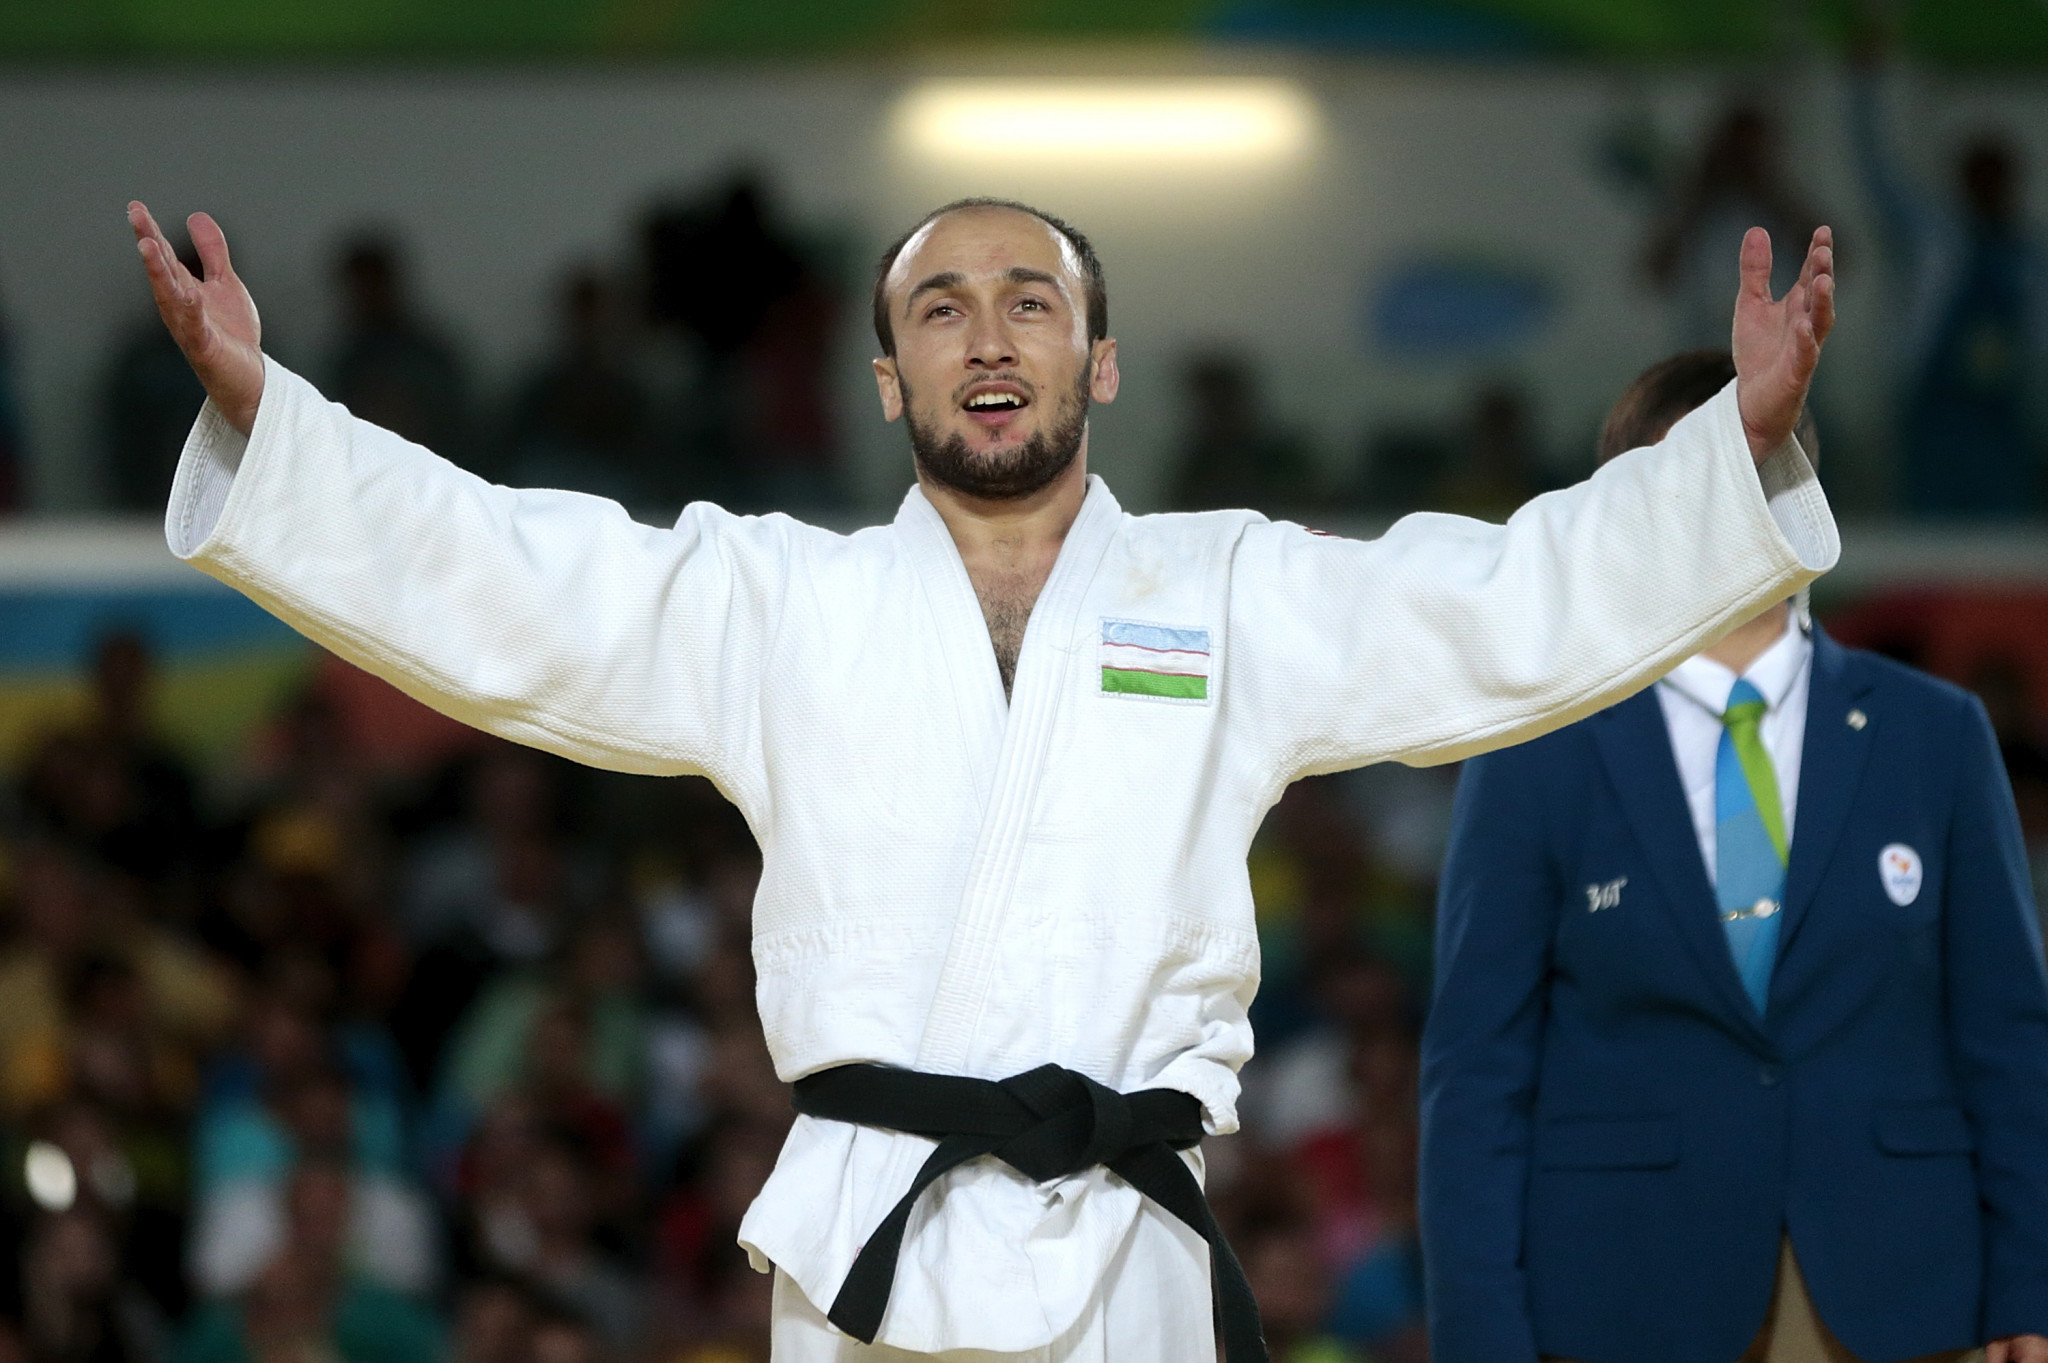 More than 100 descend on Atyrau for IBSA Judo Asian and Oceanian Championships